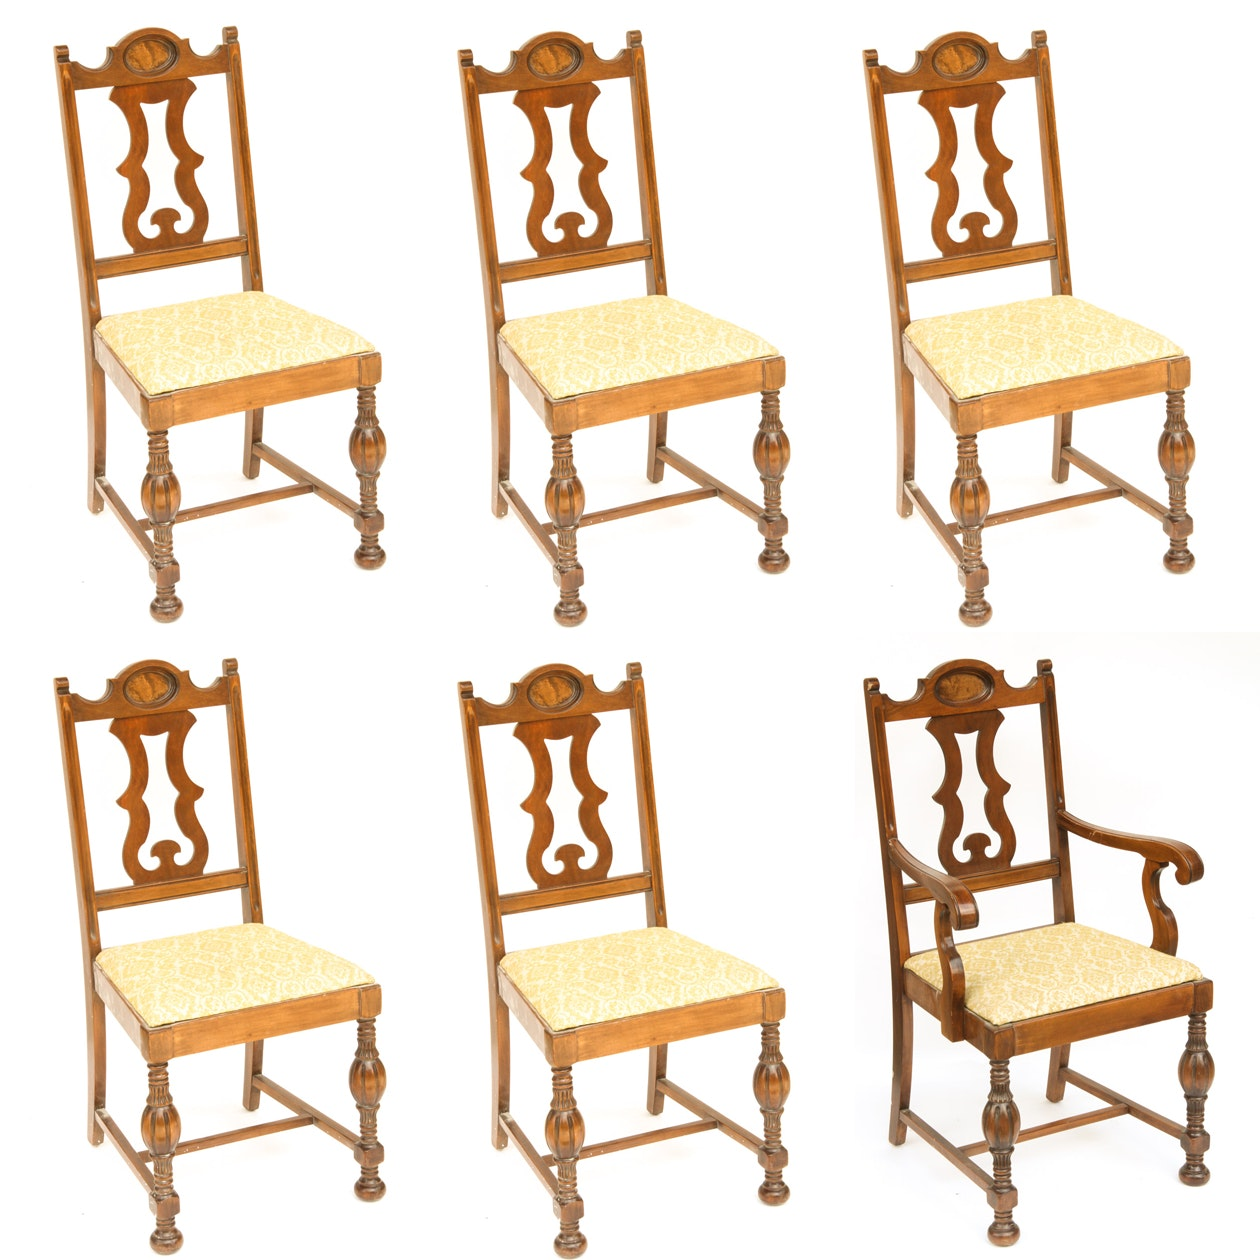 Vintage Jacobean Style Dining Chairs By Blue Bird Furniture ...